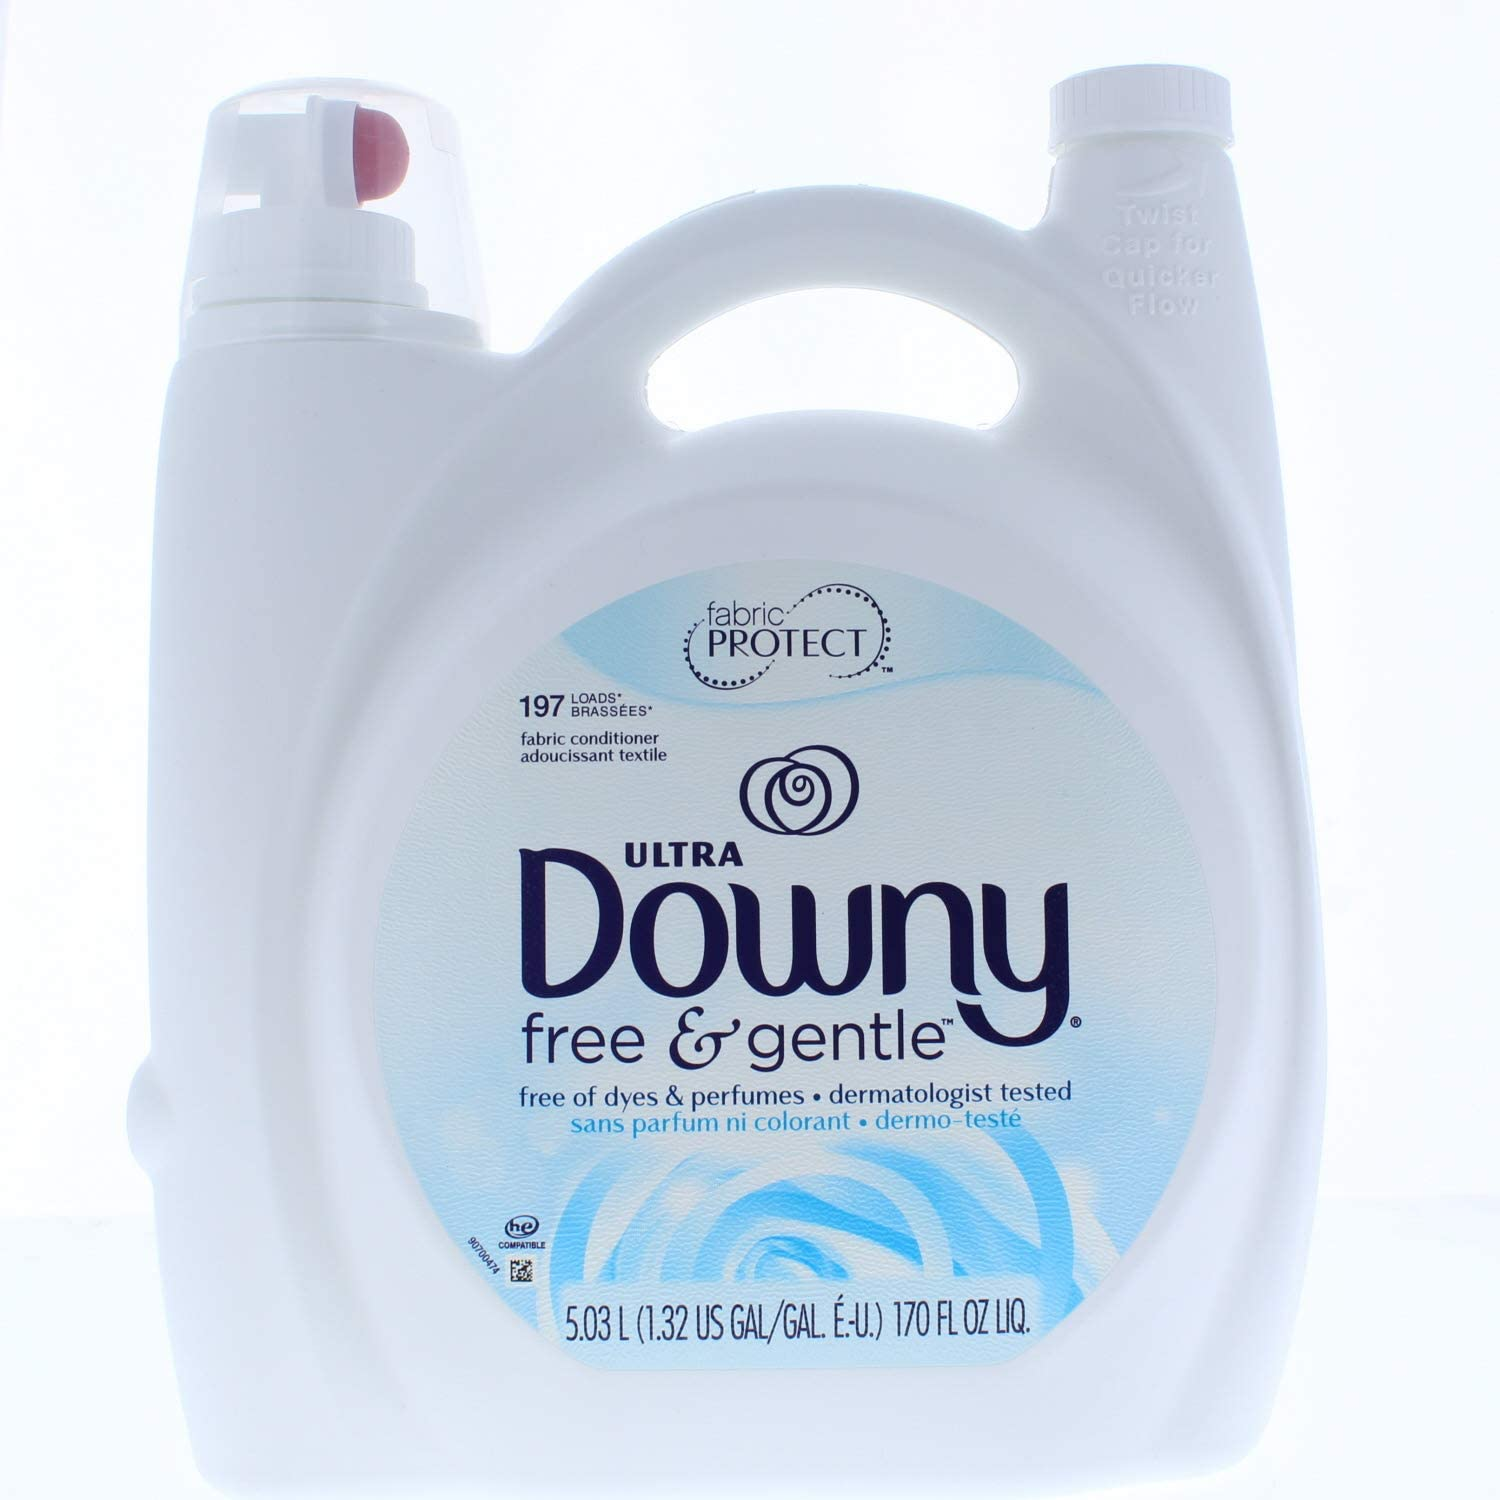 Downy Ultra Fabric Softener Free and Gentle Liquid 170 Fl. Oz 197 Loads